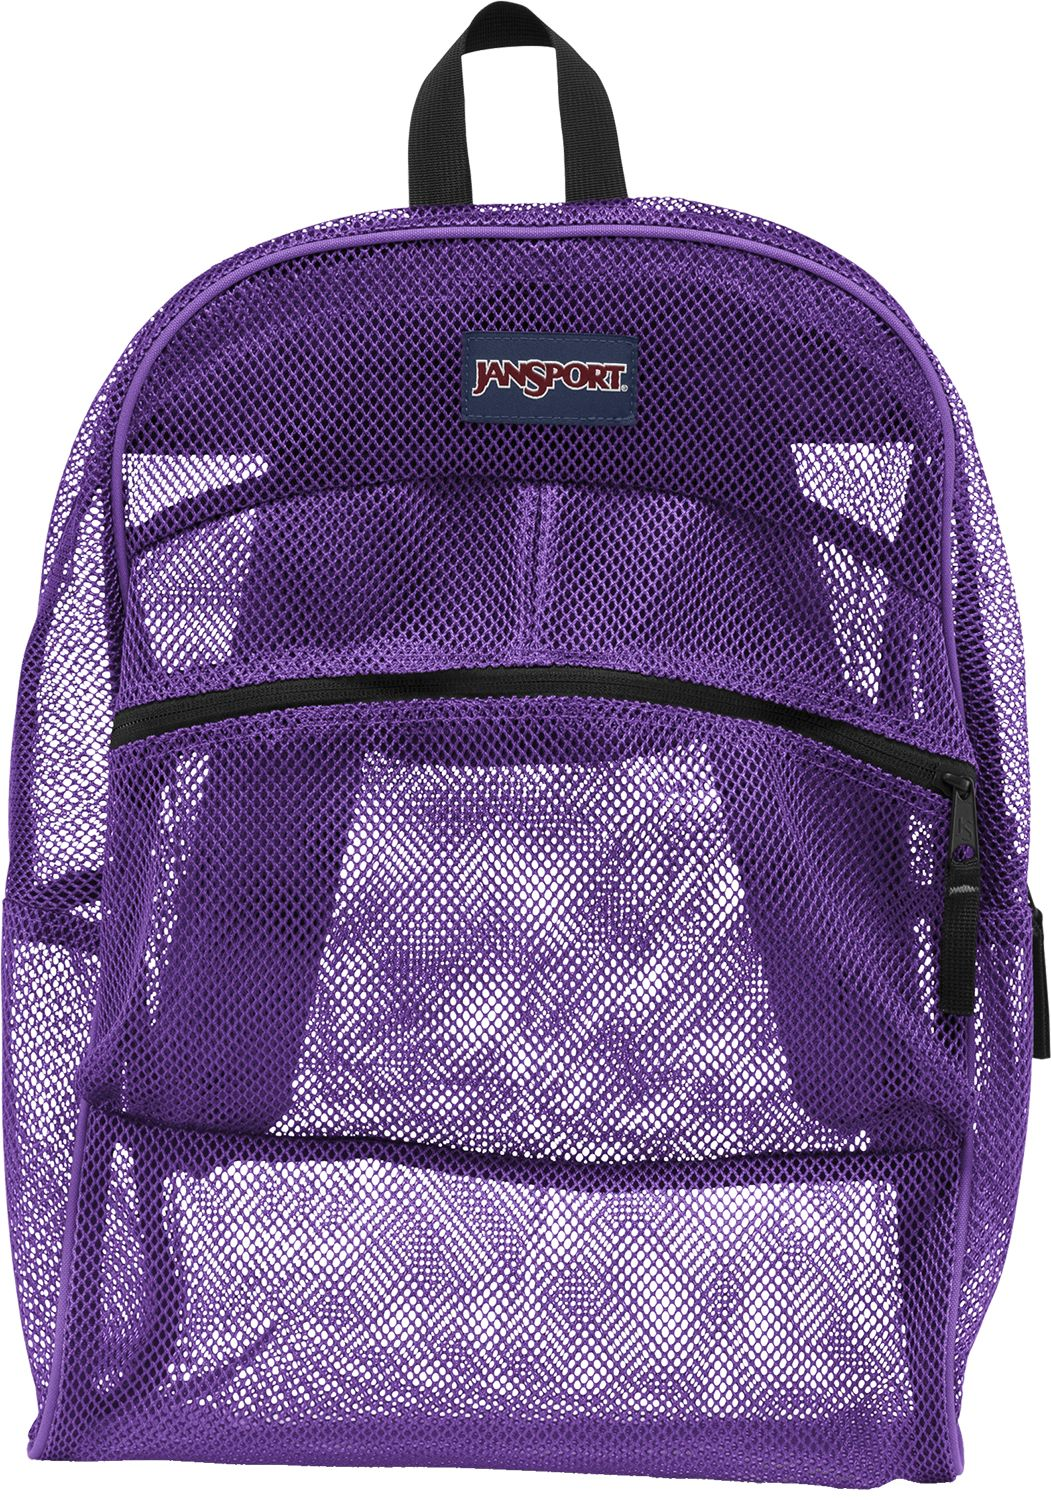 JanSport Mesh Backpack| DICK'S Sporting Goods